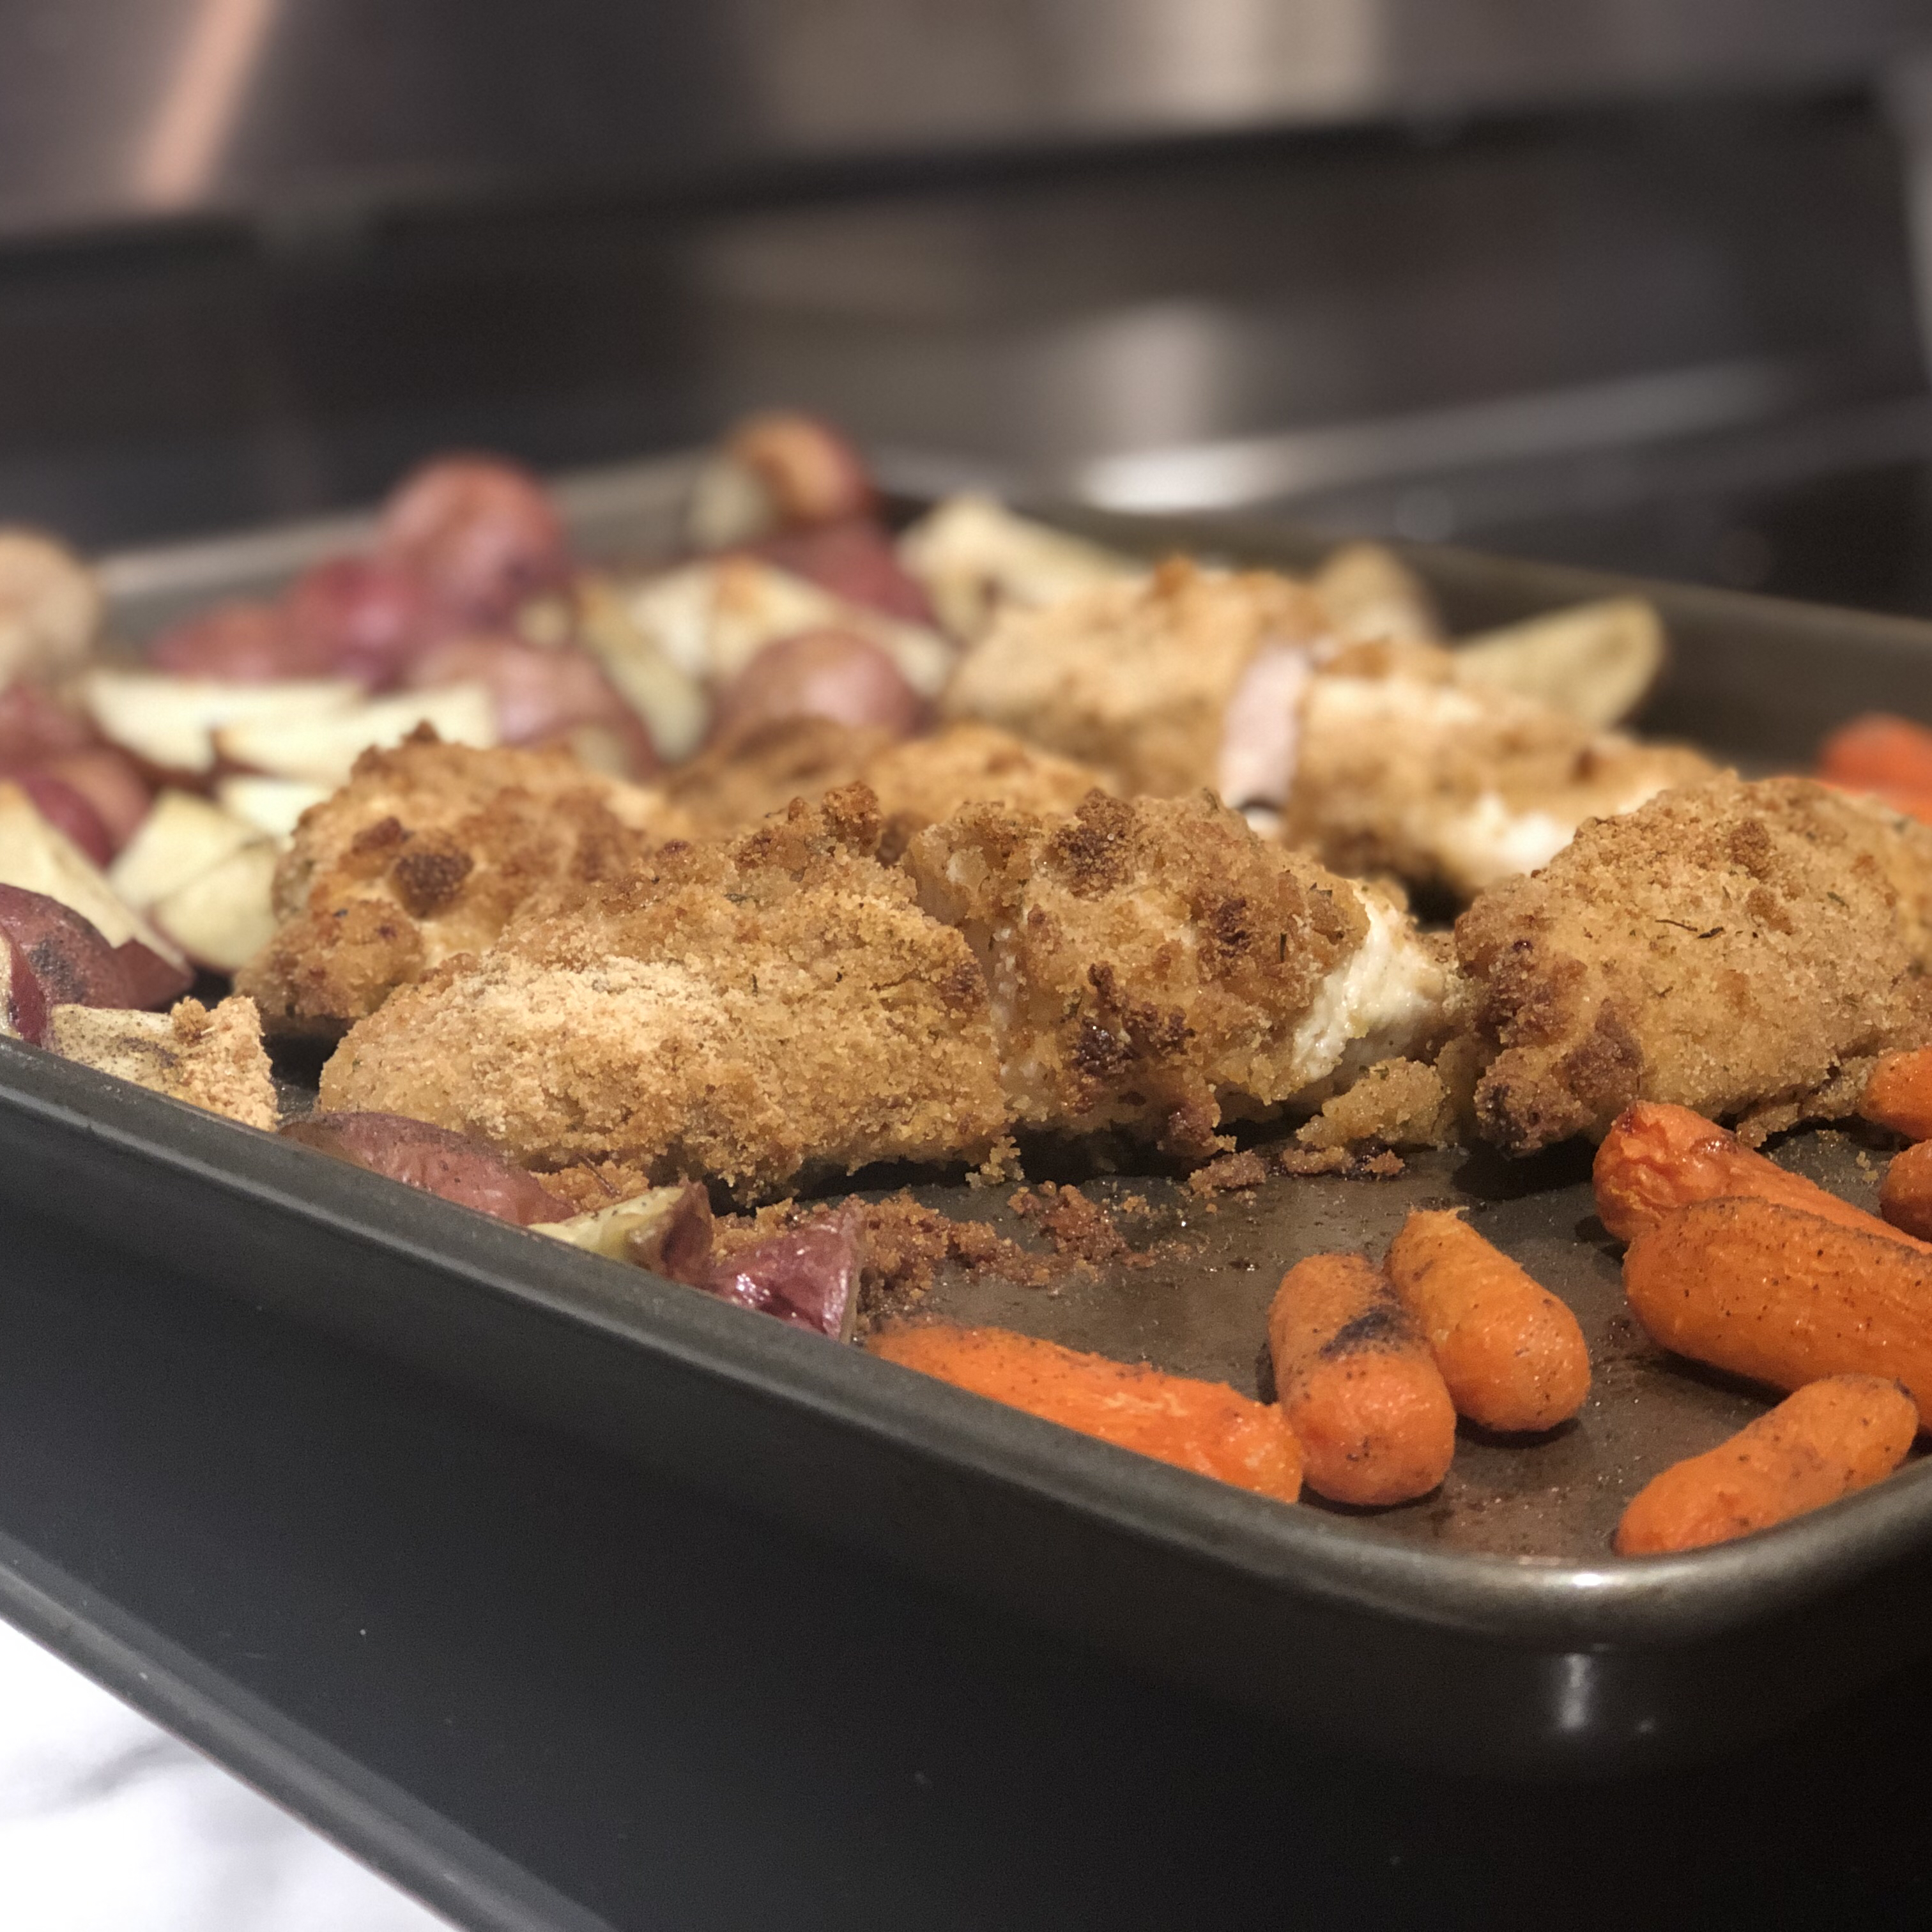 Sheet Pan Dinner with Chicken and Veggies Whitney Jeffords